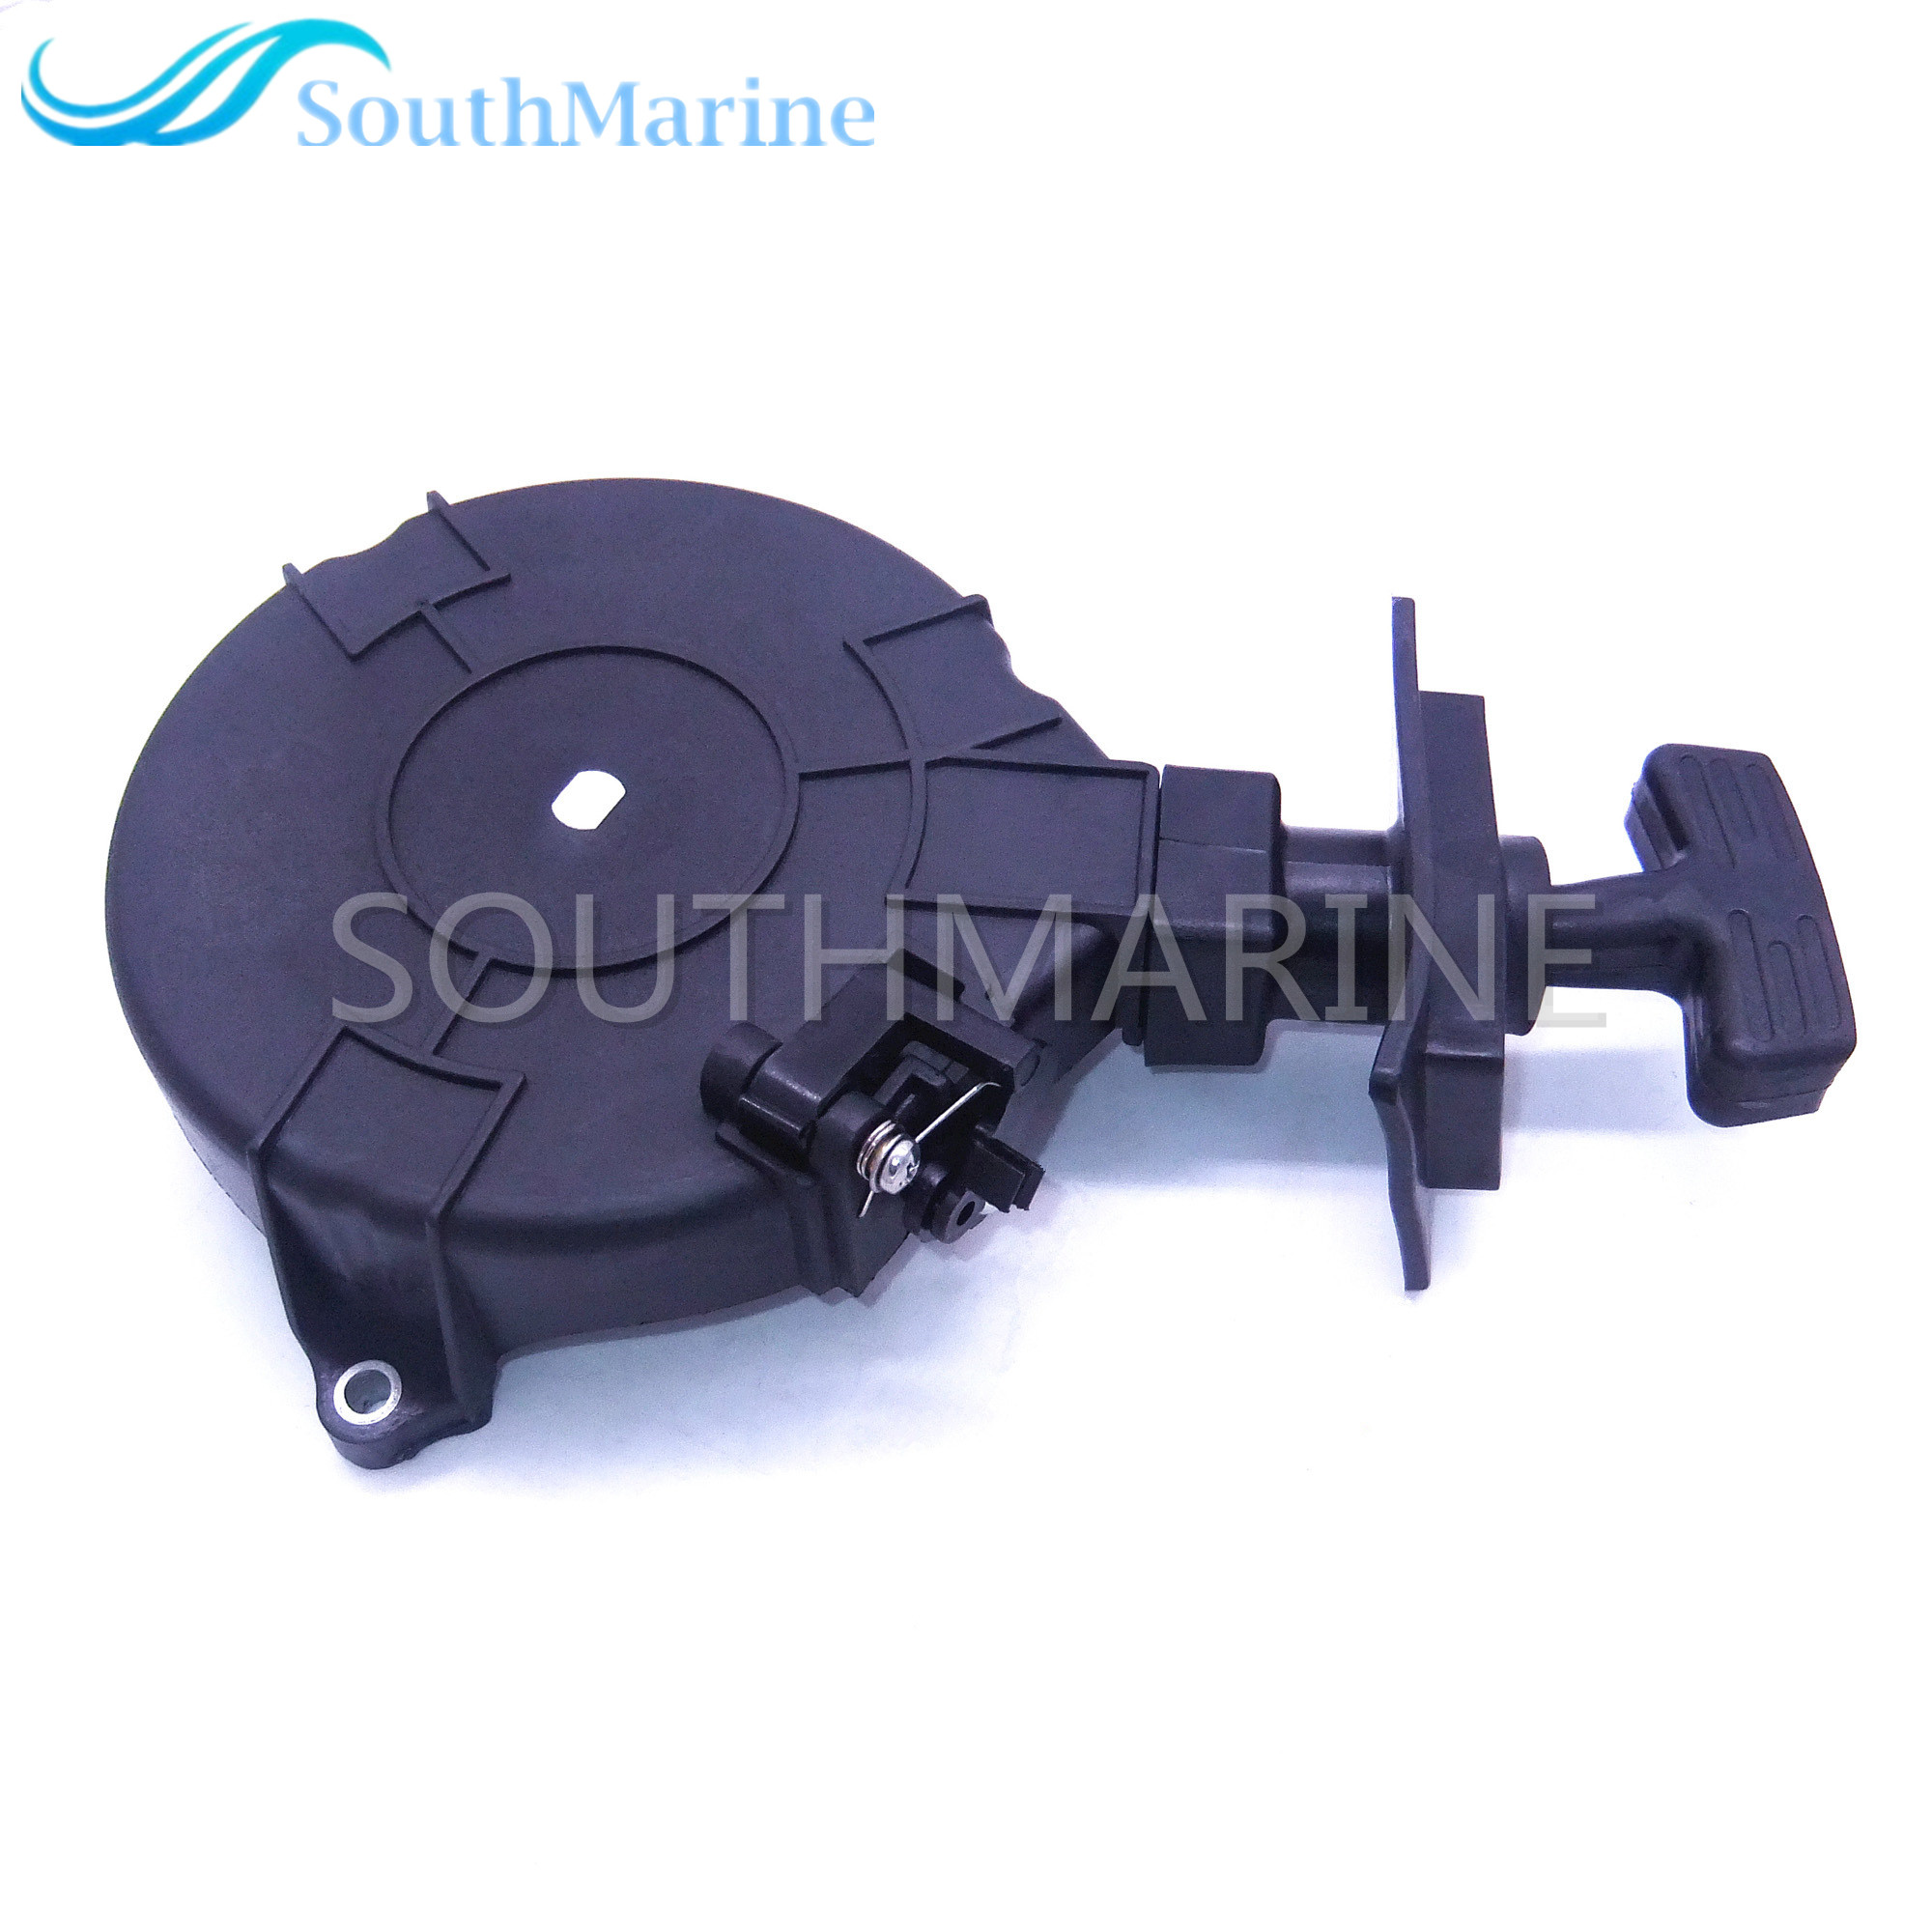 3R1-05090-0 3R1050900M 3AS-05090-0 3AS050900M 3GR-05090-1 3GR050901M Recoil Starter Assy For Tohatsu Nissan Outboard